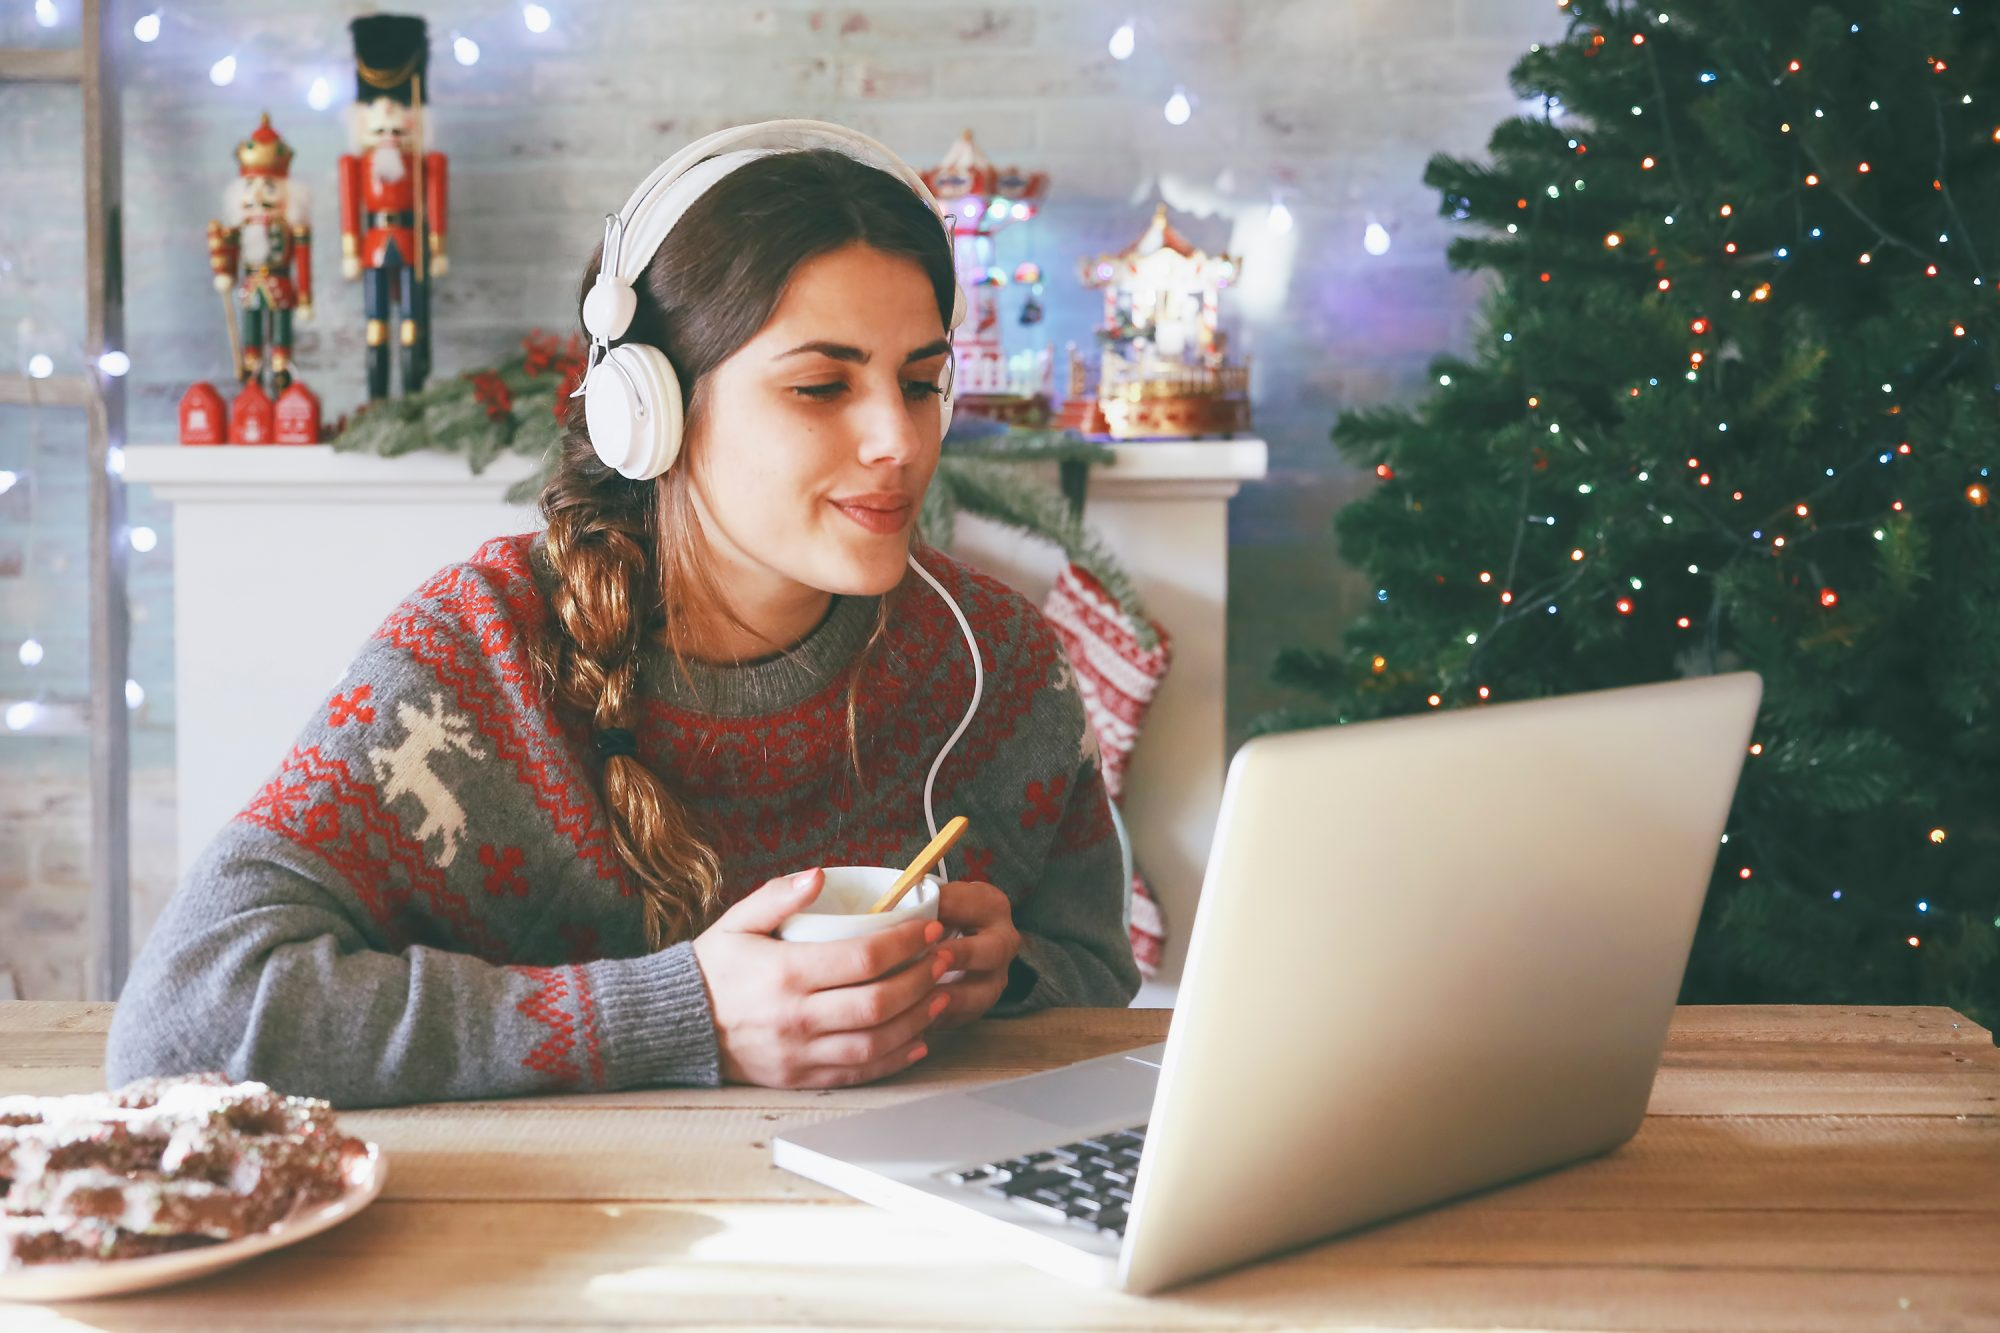 Woman with cup of coffee using laptop and headphones at Christmas time